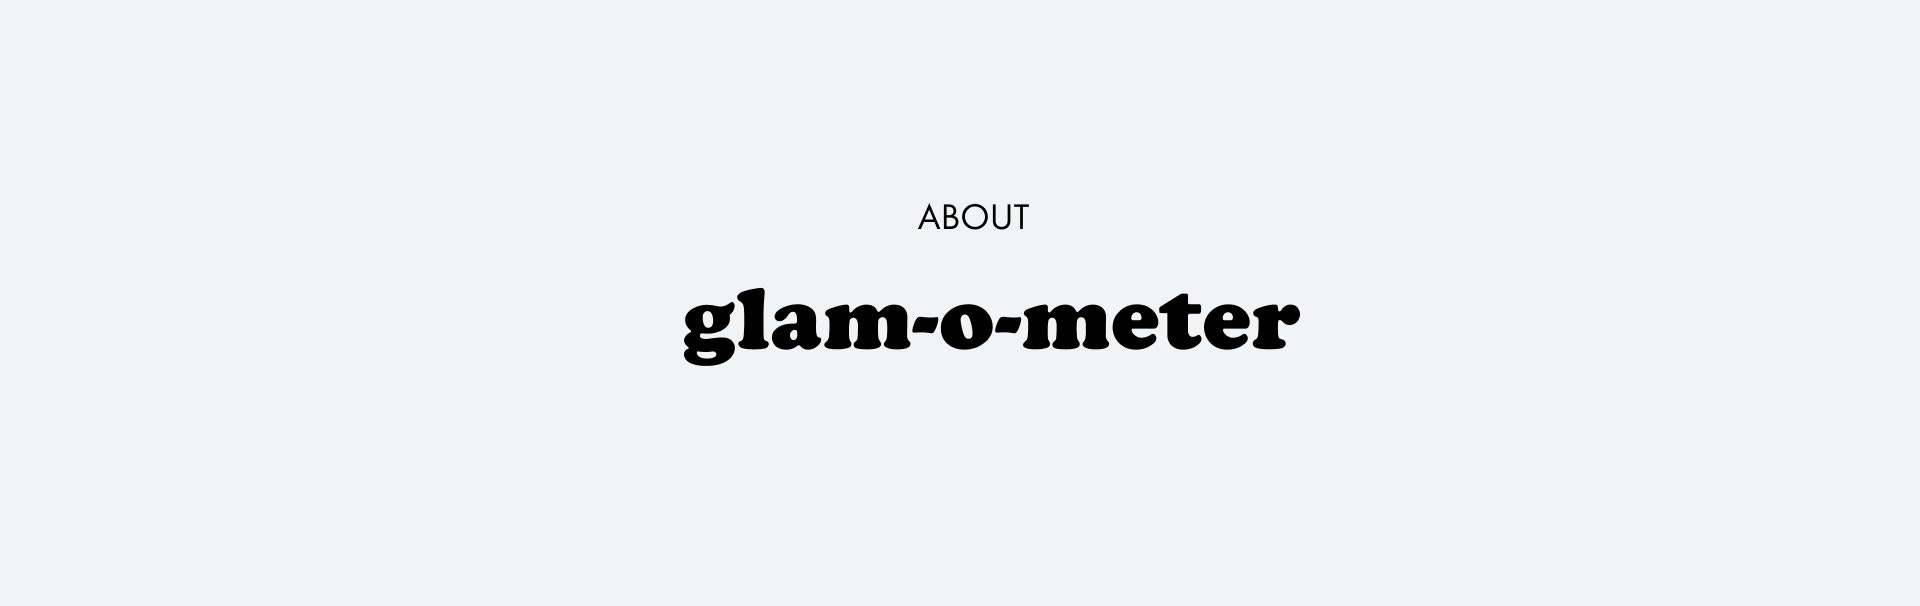 About glam-o-meter | Seidensticker